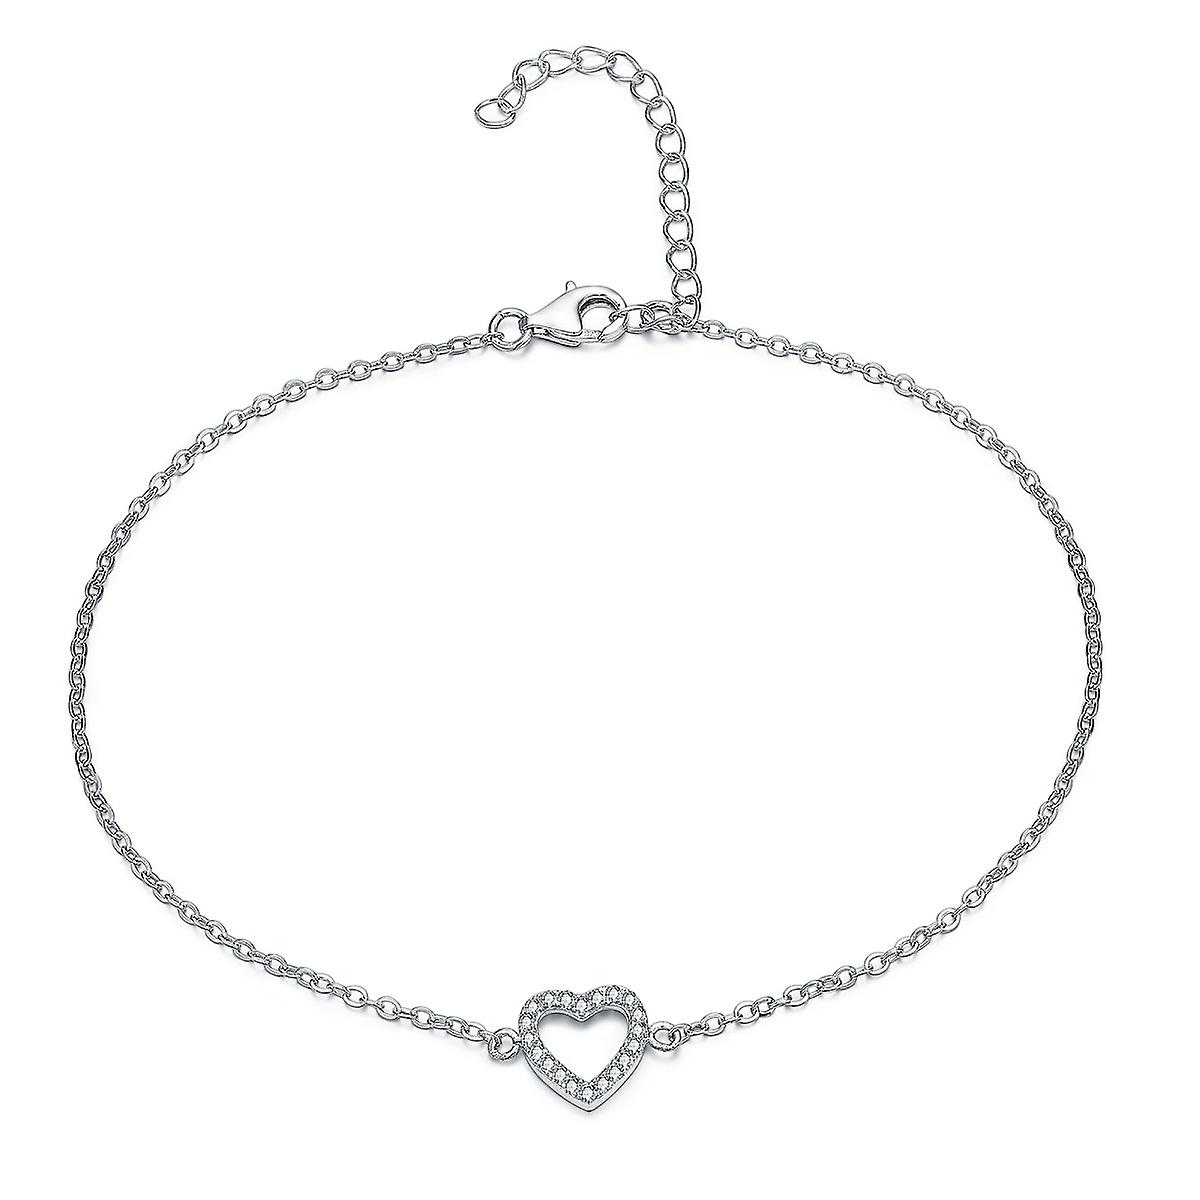 925 Sterling Silver Elegant Heart Pave Ankle Chain